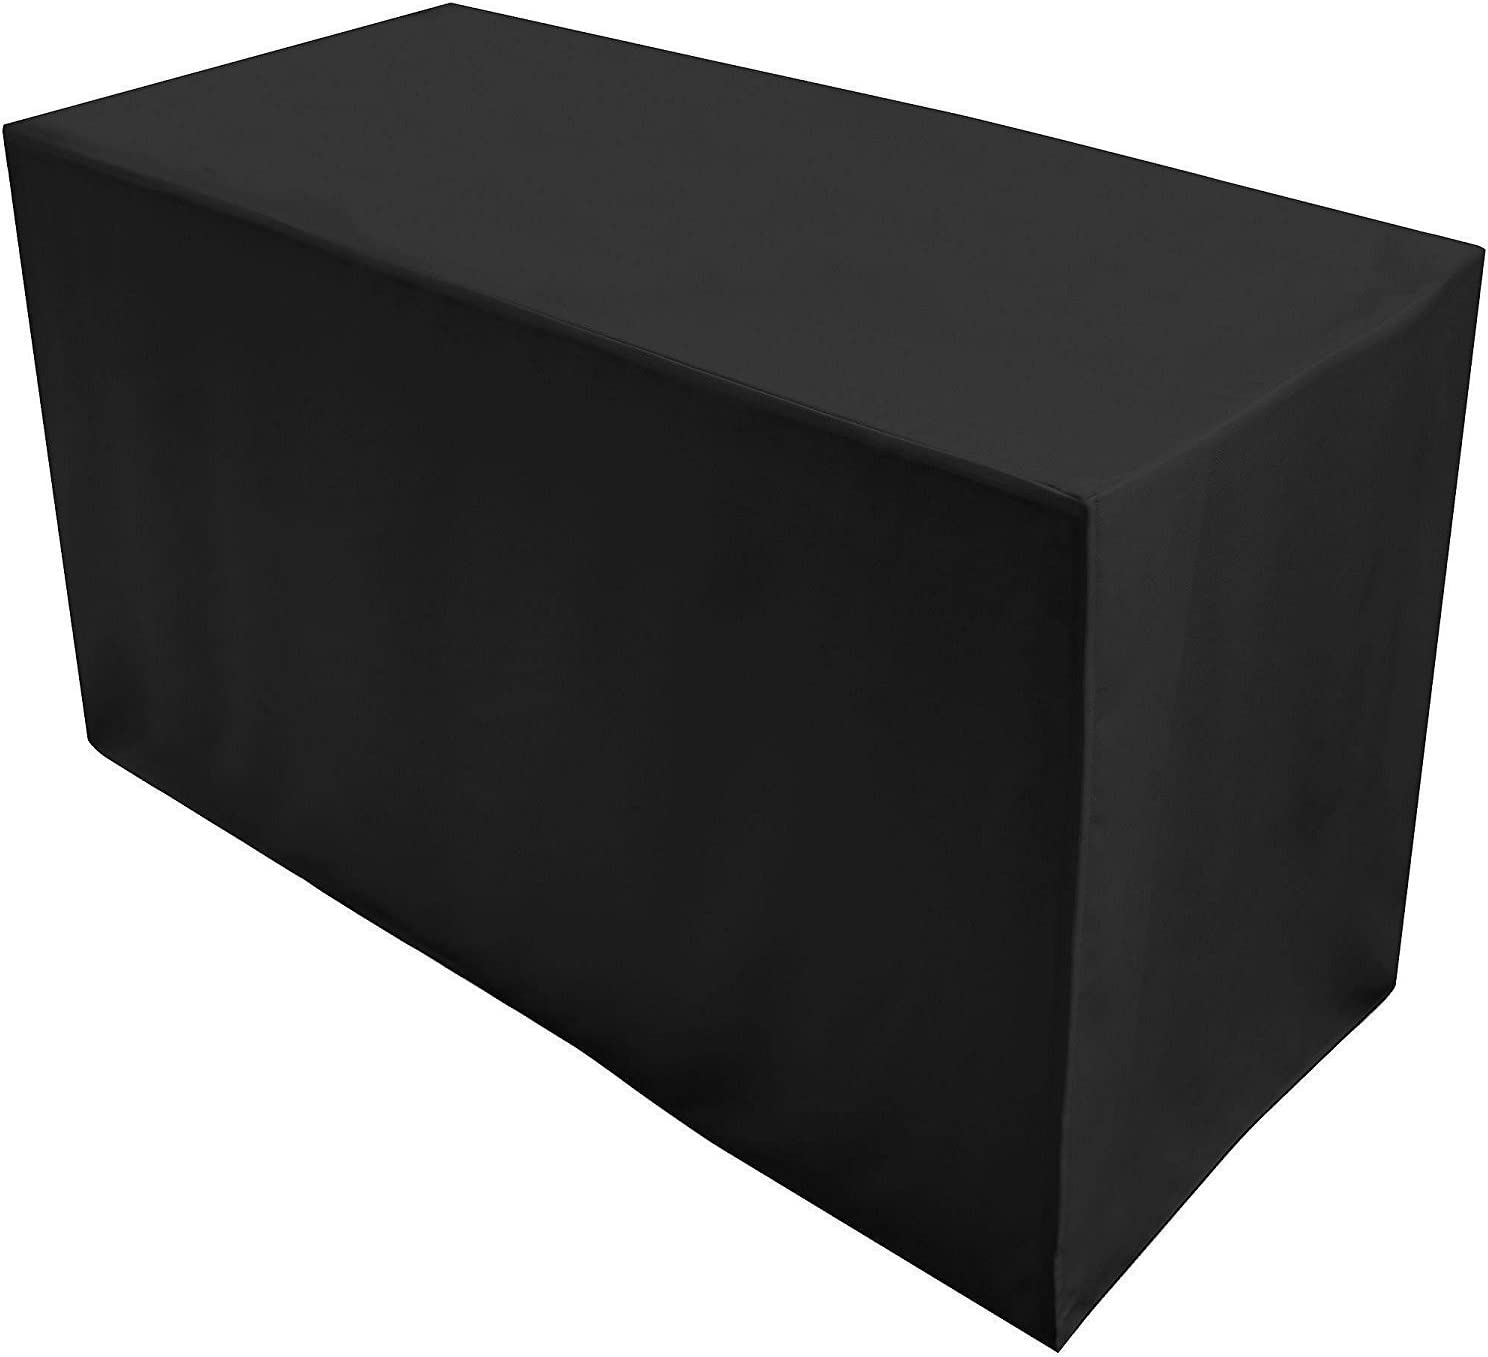 Amazon Com Folding Table Cover Fitted Tablecloth For 4 Foot Folding Table Black Home Kitchen